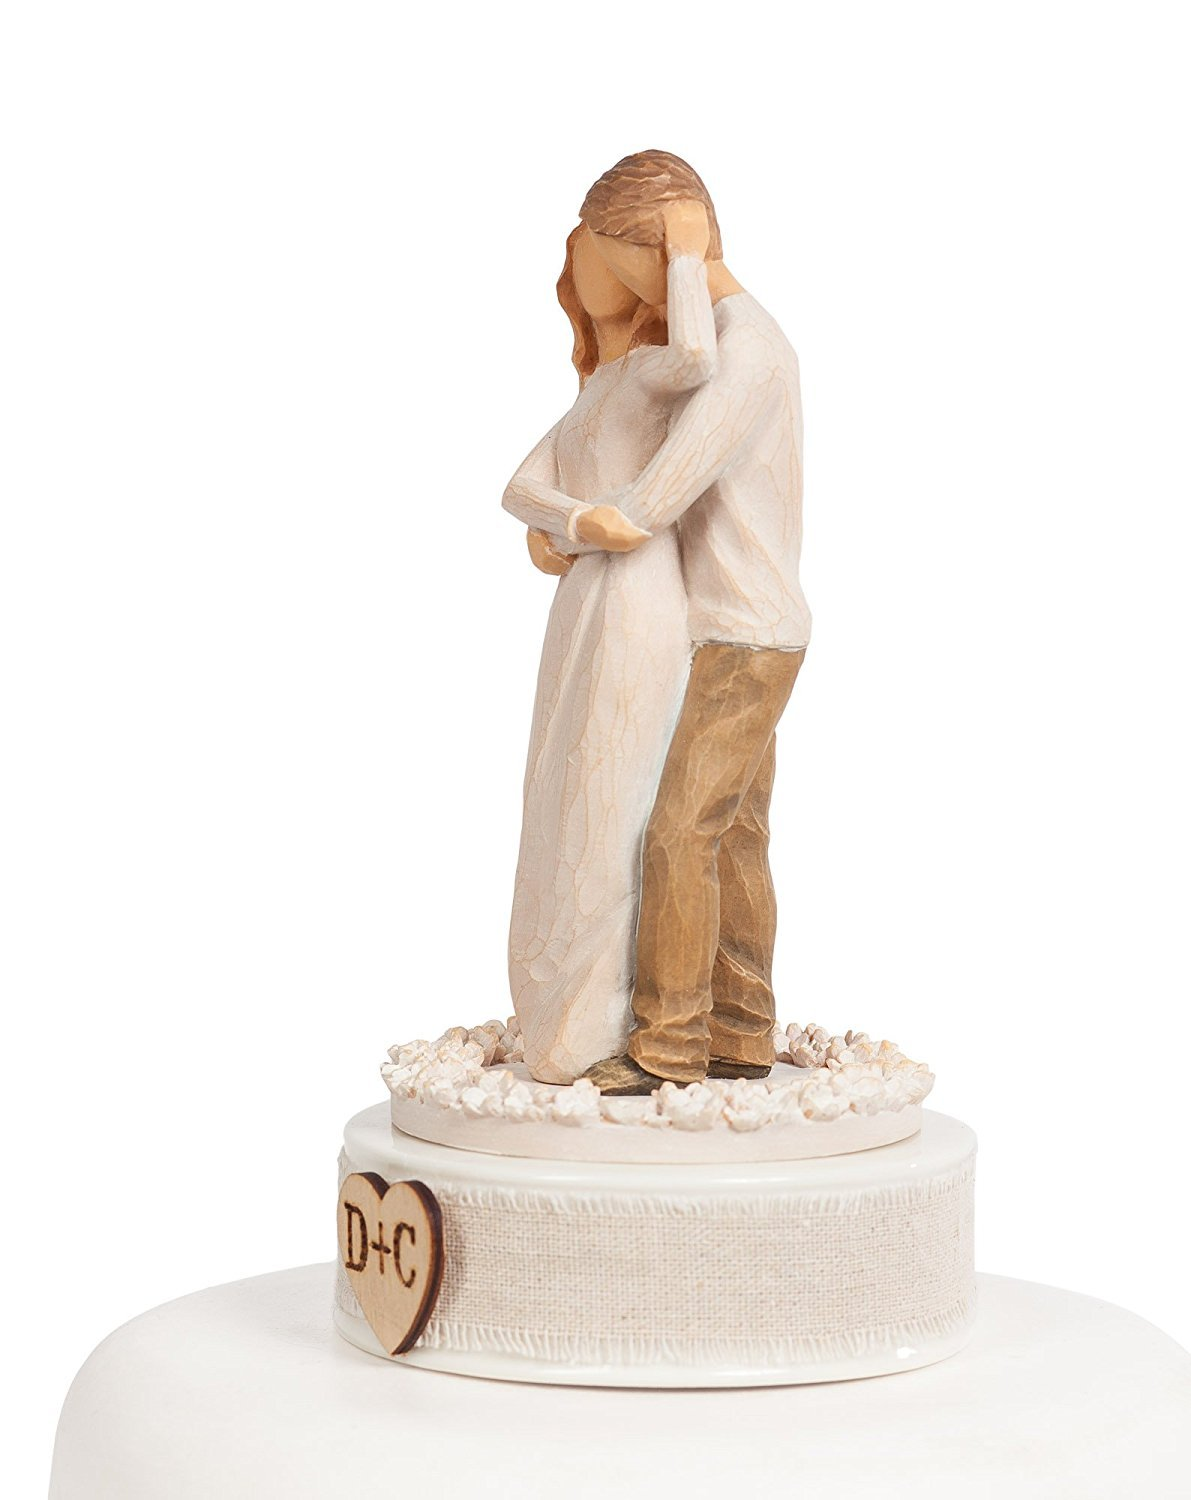 Personalized Willow Tree ''Together'' Wedding Cake Topper ... by DEMDACO - Home (Image #2)